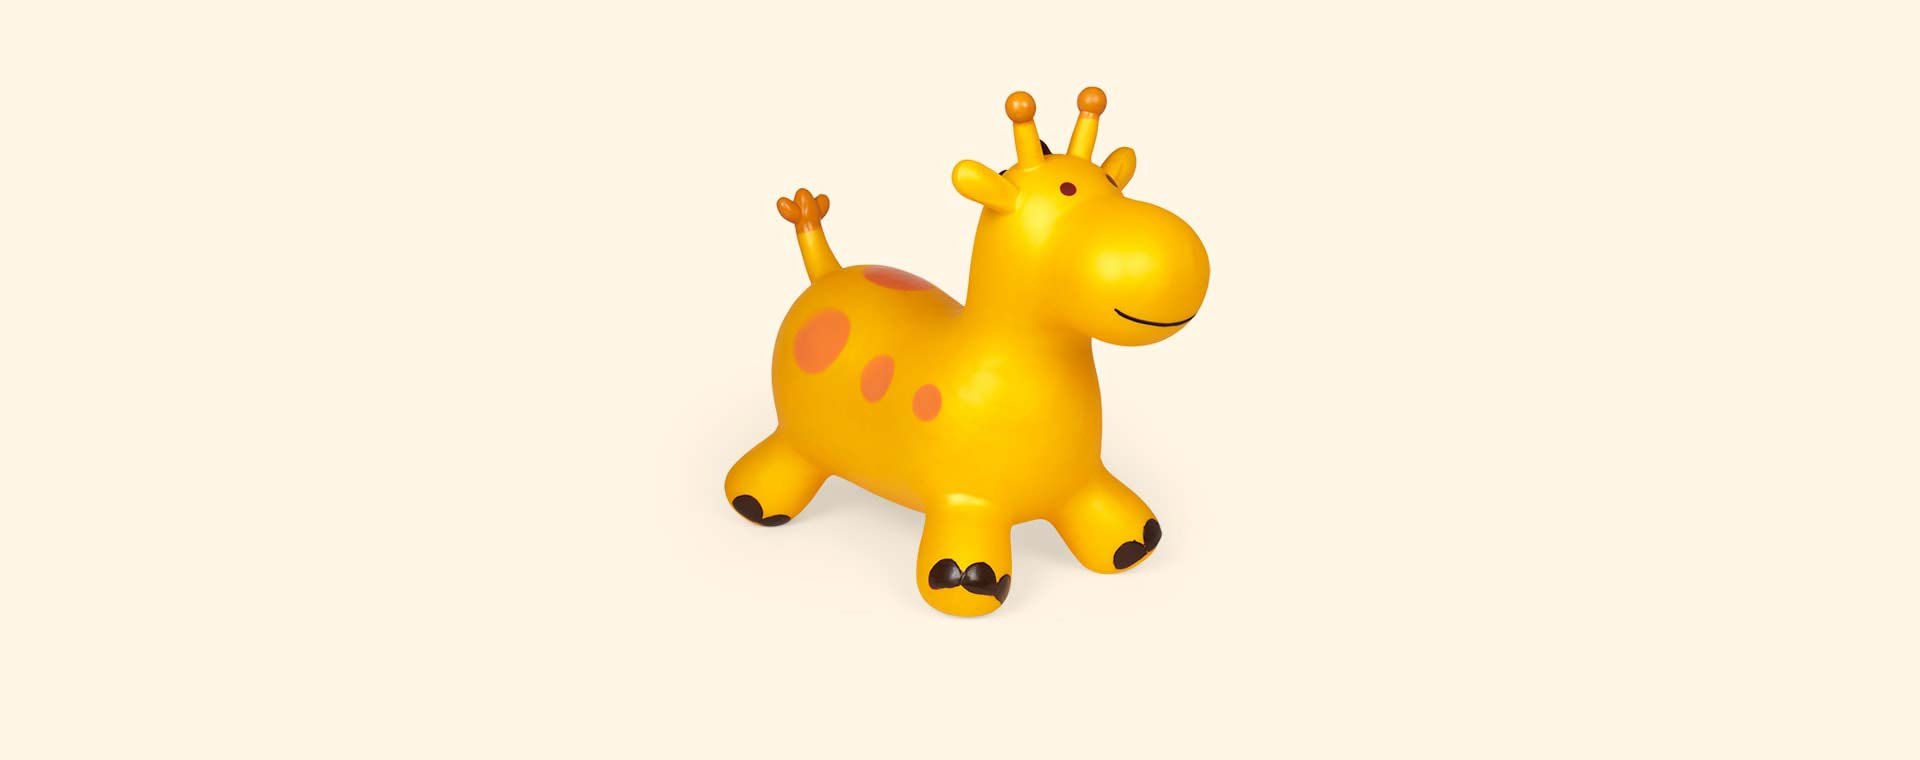 Yellow Giraffe Happy Hopperz Small Giraffe Hopper